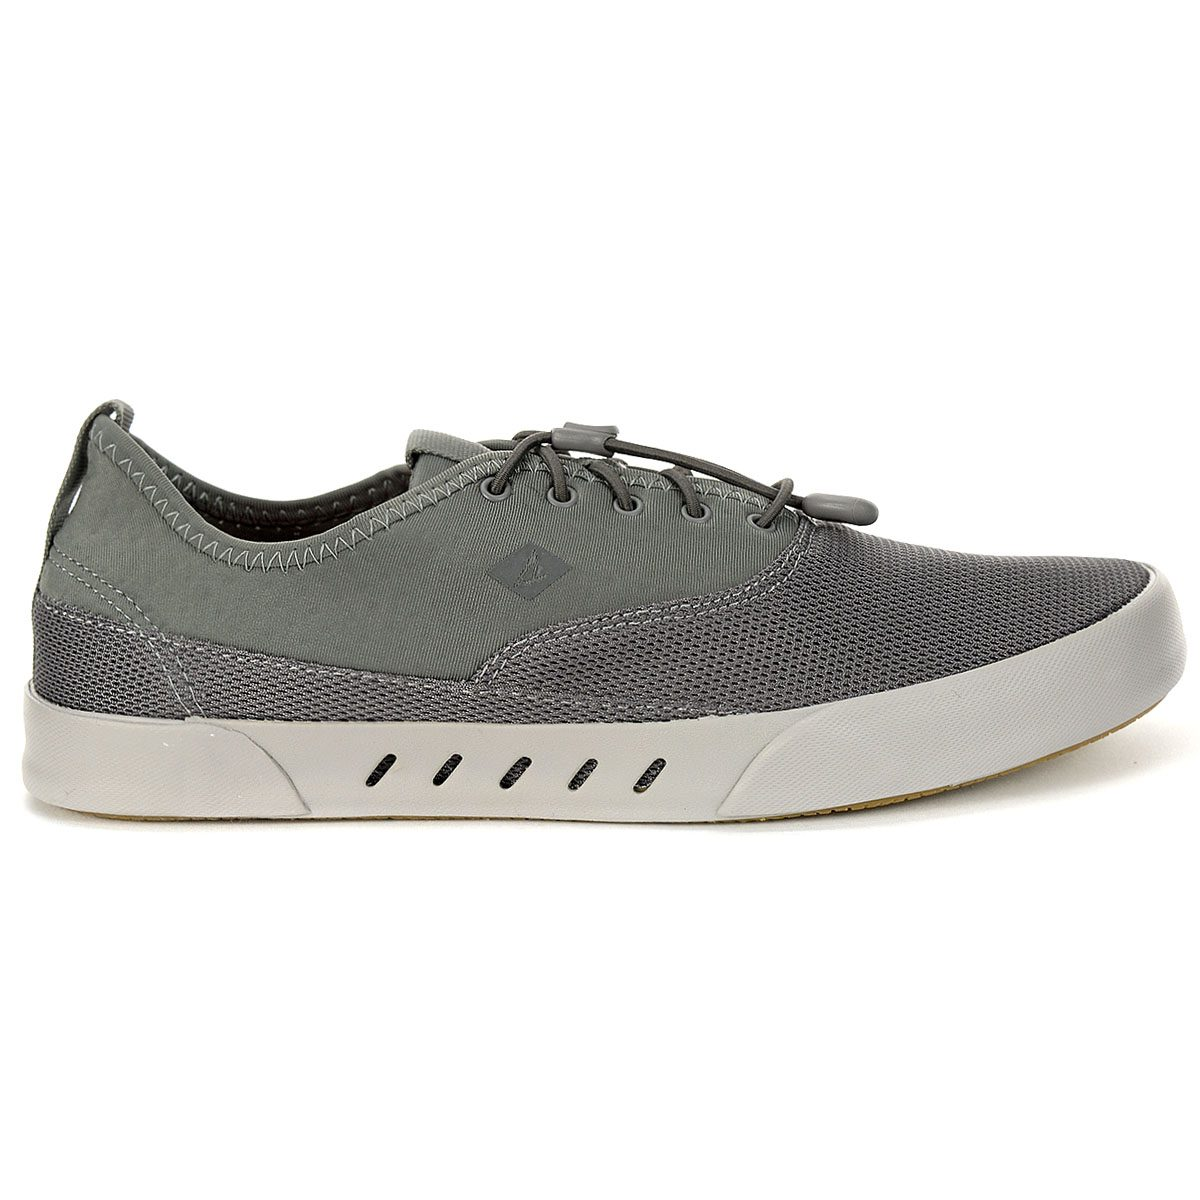 Sperry Top-Sider Men's Maritime H2O